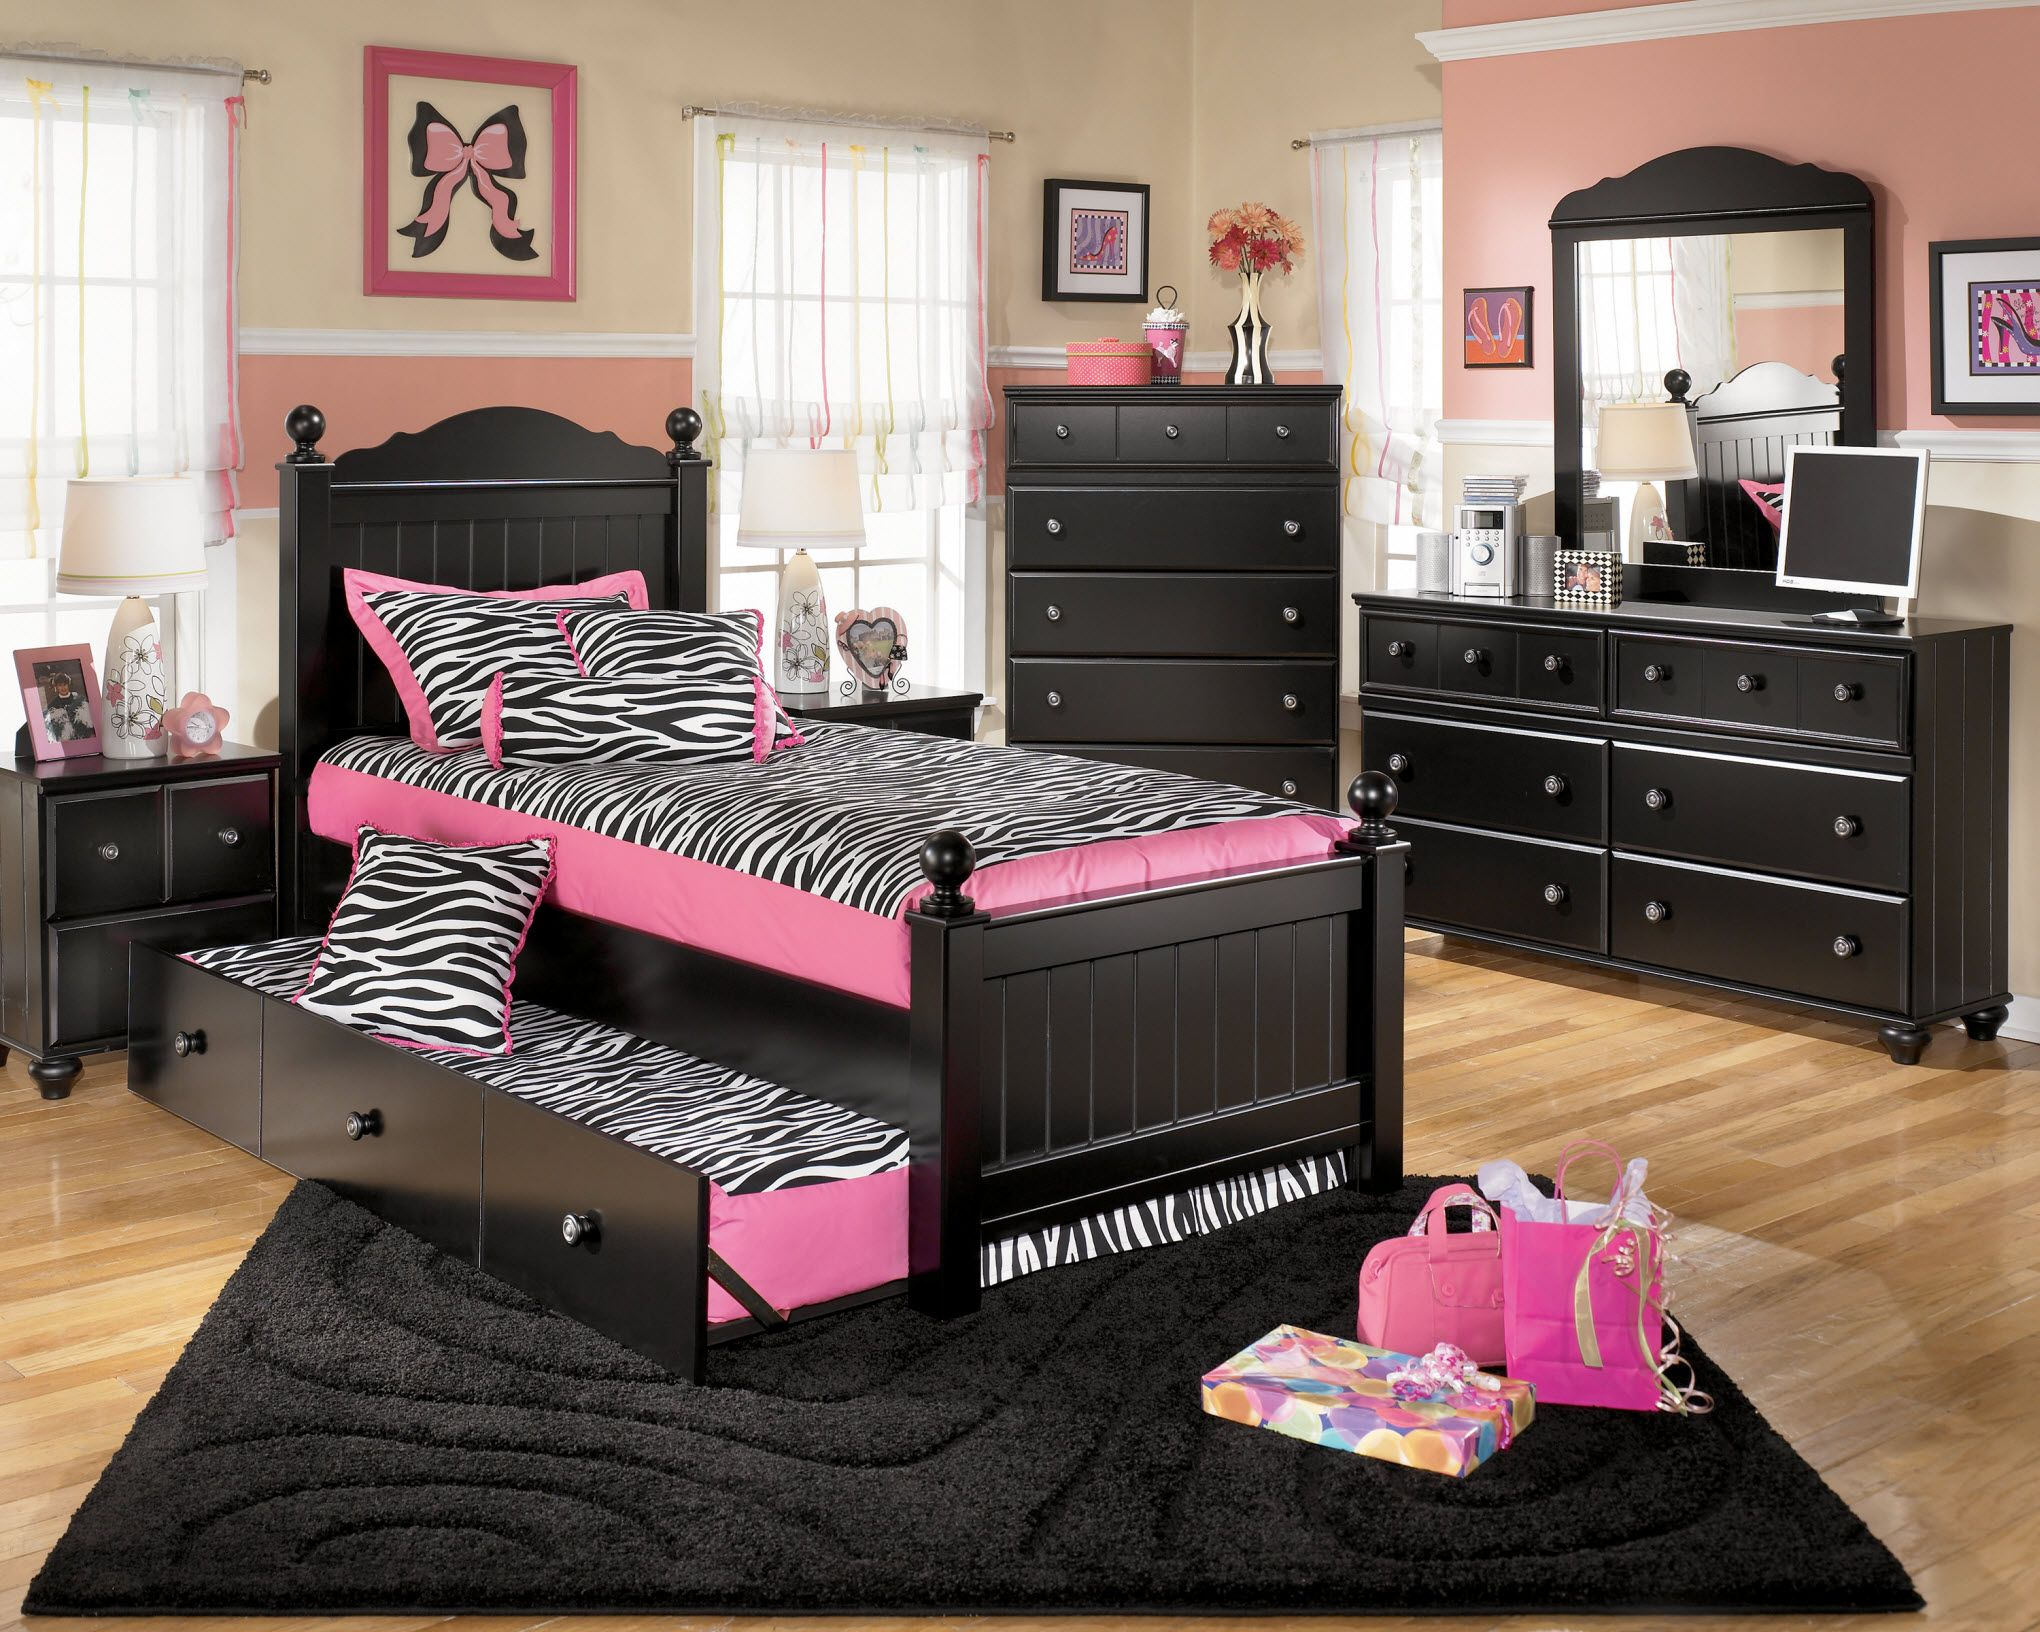 1000 Images About Kid39s Bedrooms On Pinterest Black Bedroom